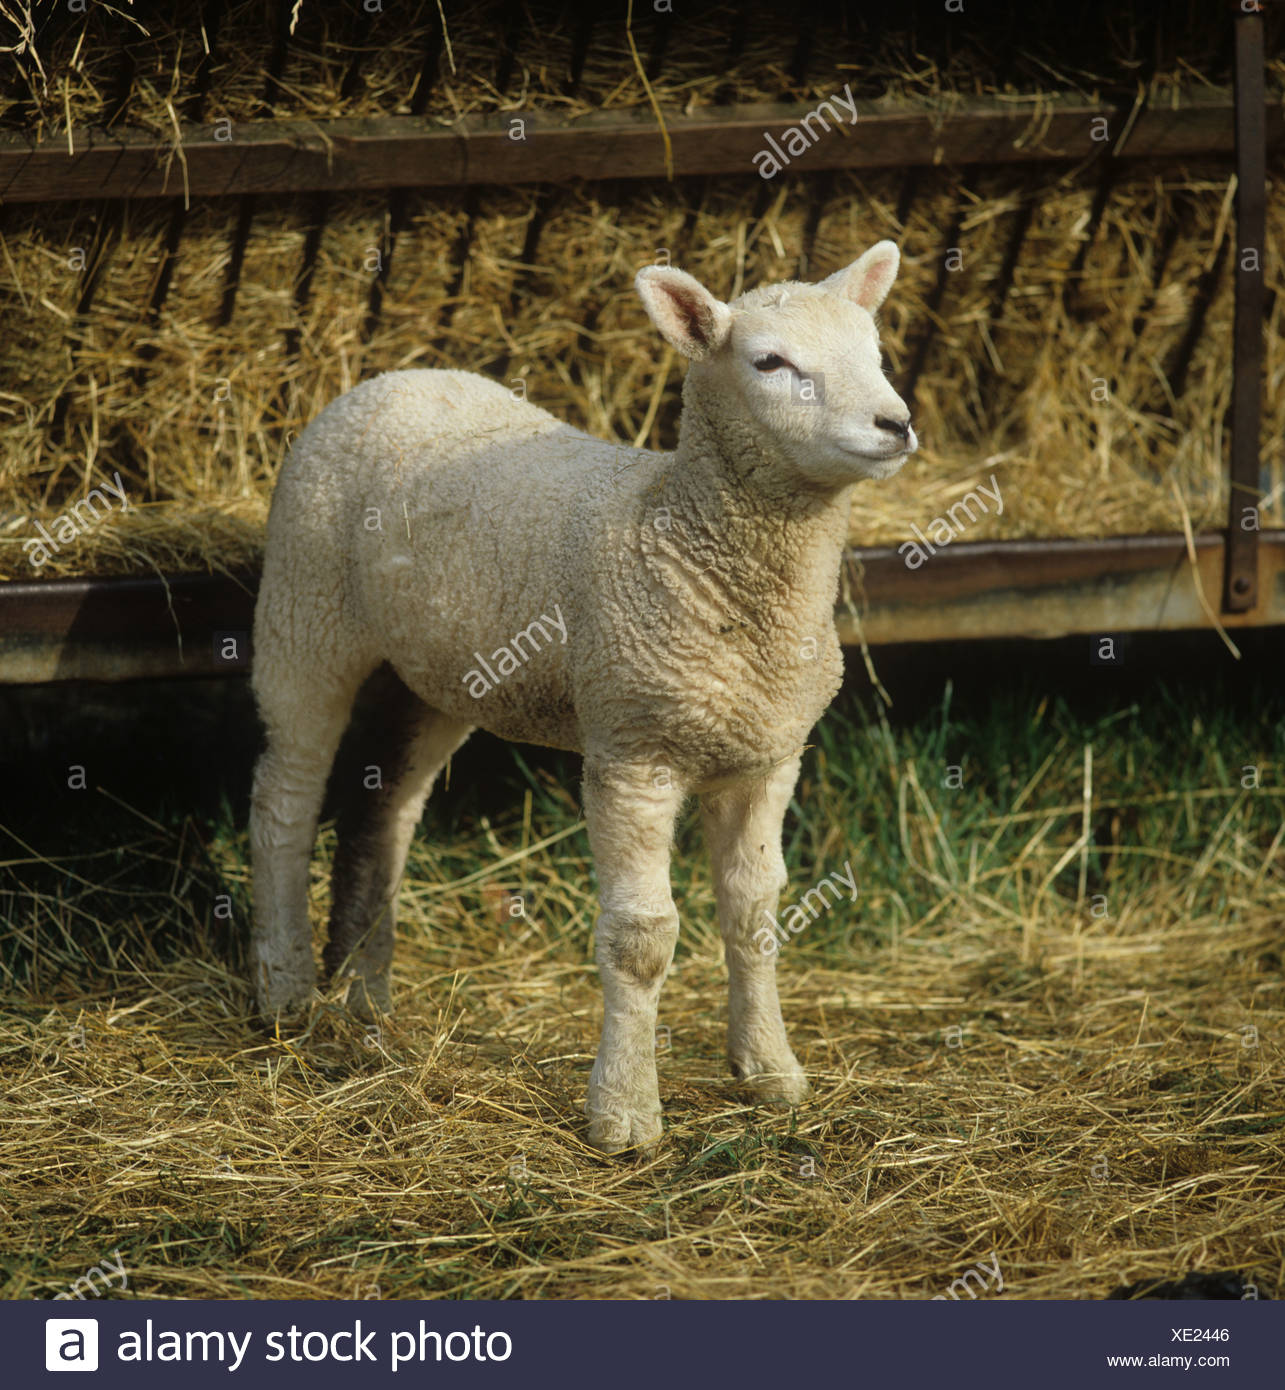 A Charollais X lamb standing by hay feeder - Stock Image